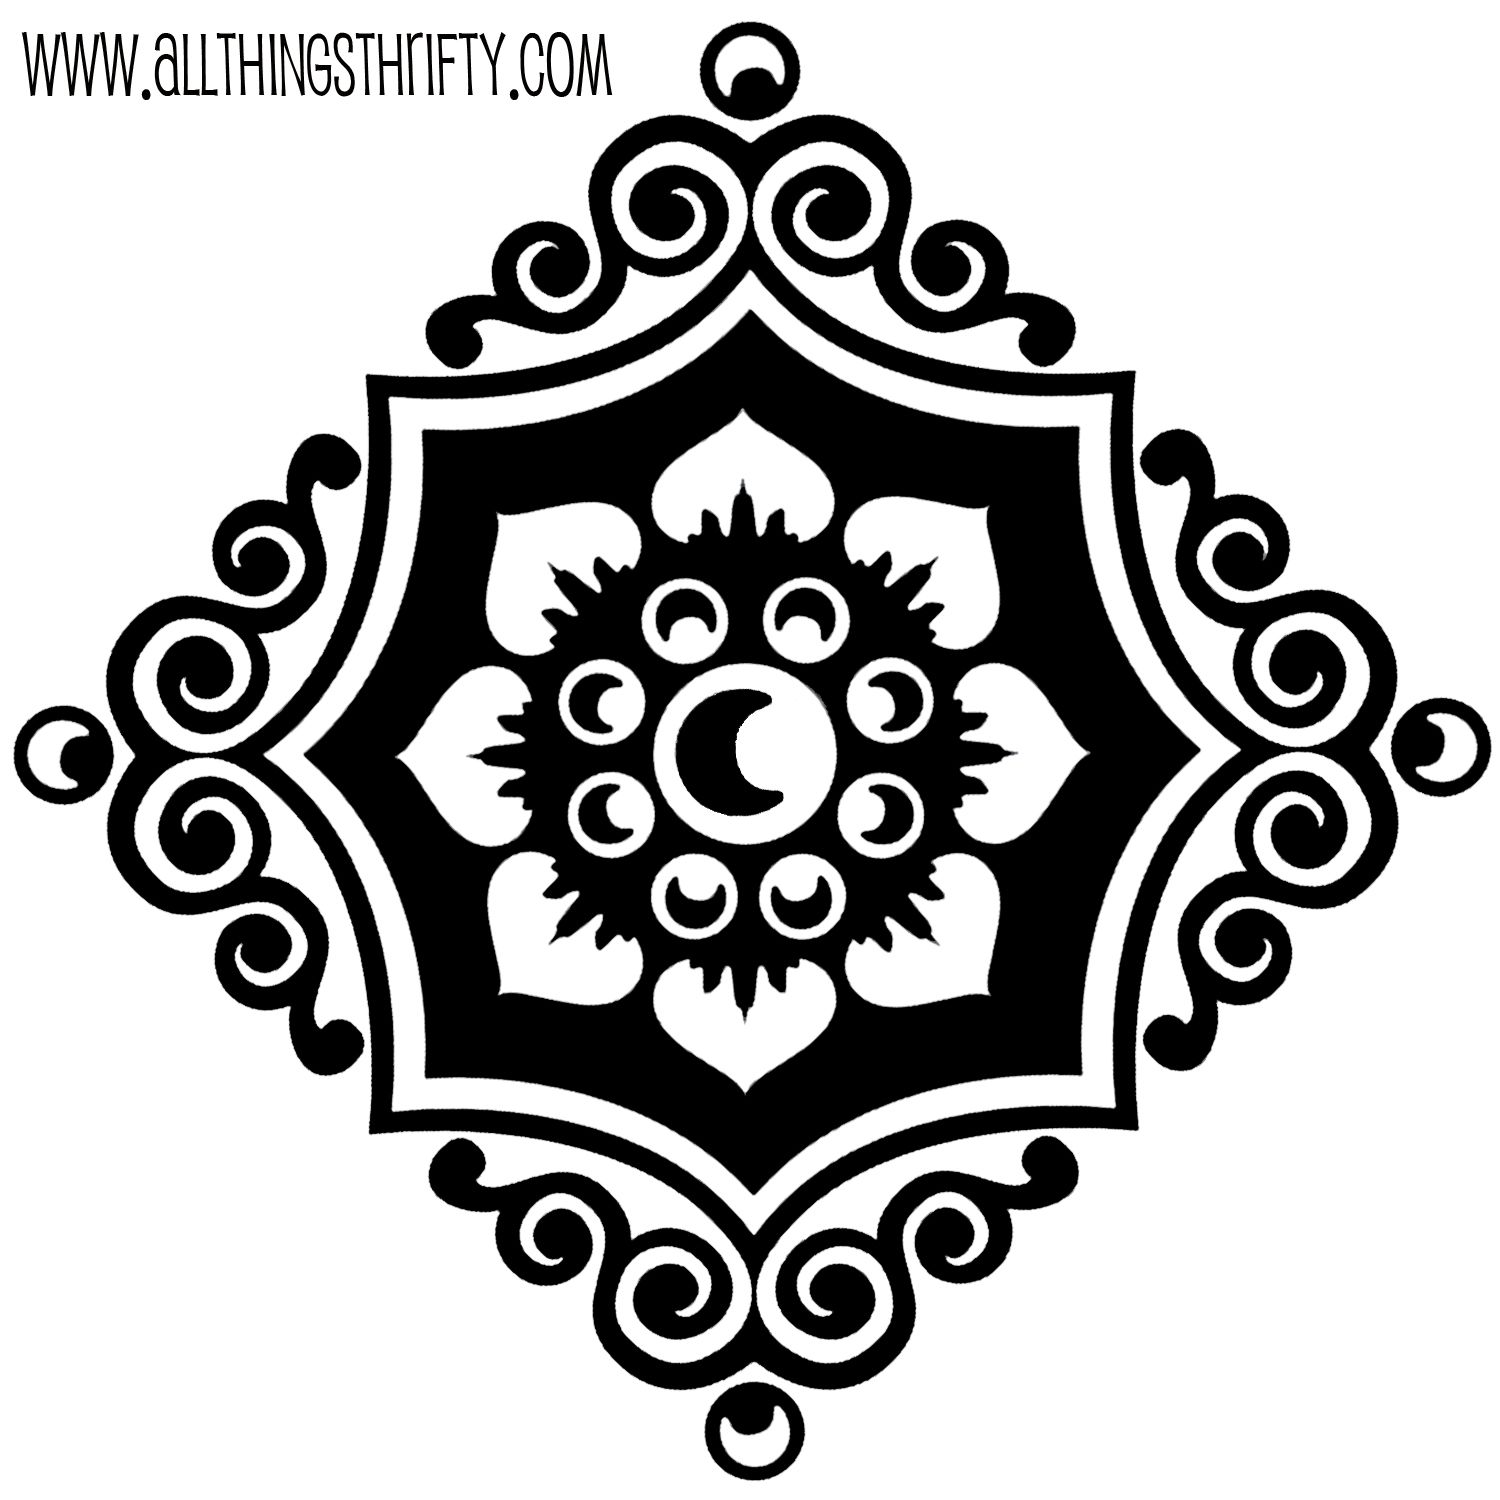 Wall painting stencils printables - Stencil 2